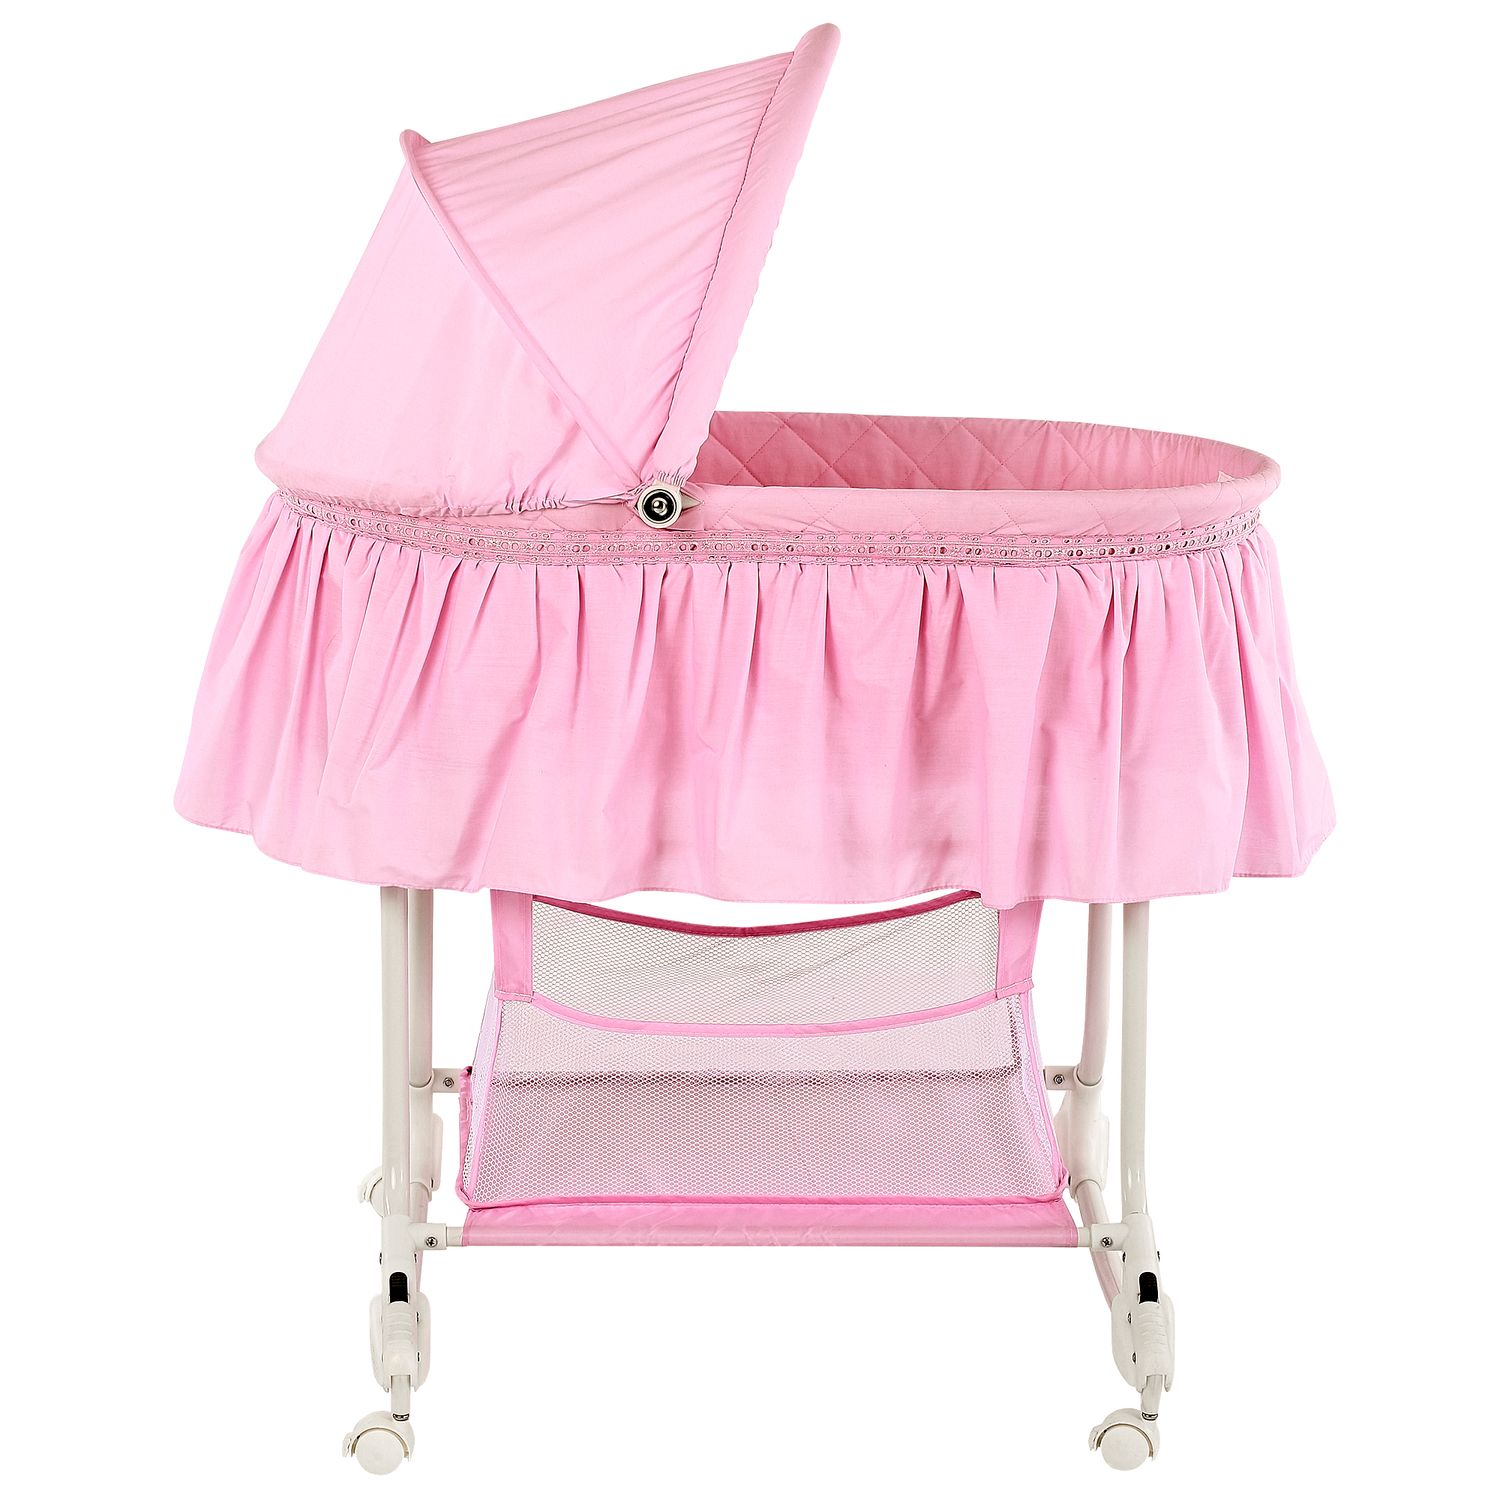 bassinets u0026 cradles nursery furniture baby gear kohl u0027s